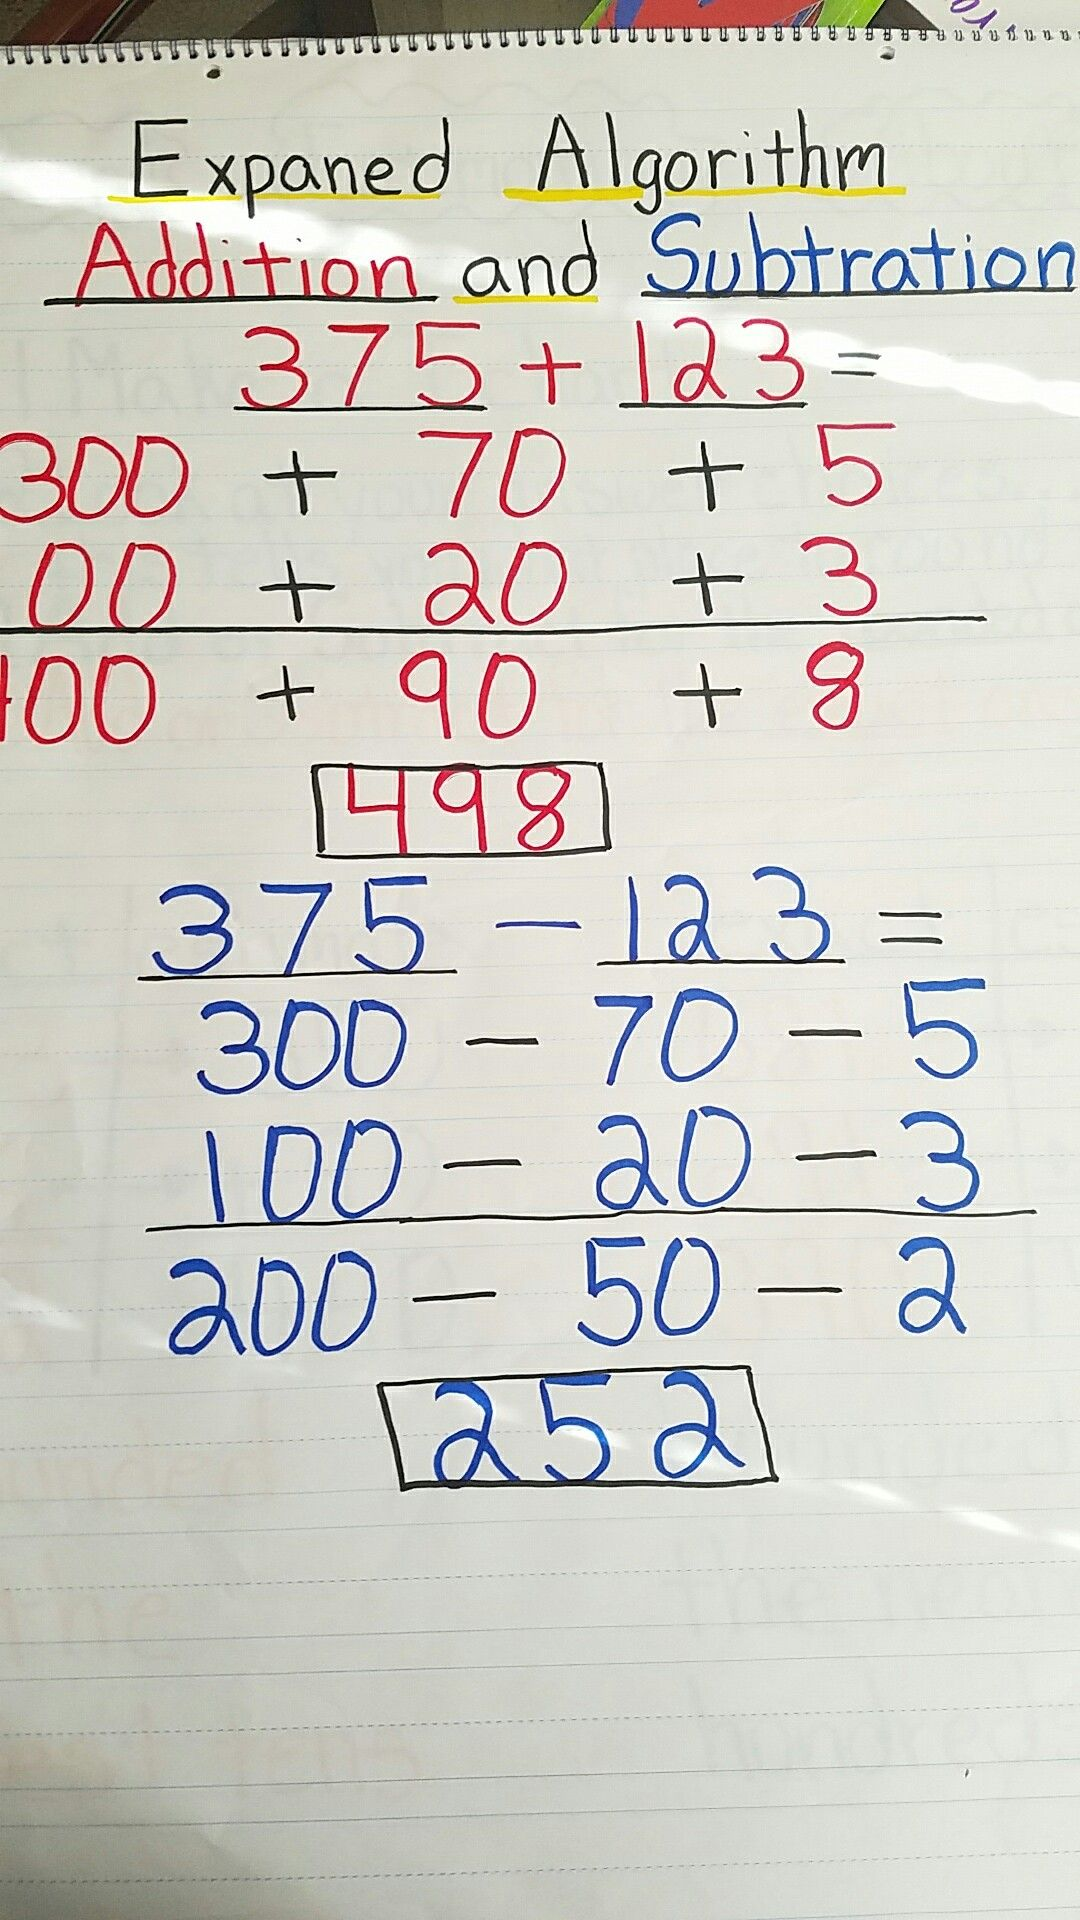 Expanded Algorithm addition and subtraction | first week of math ...